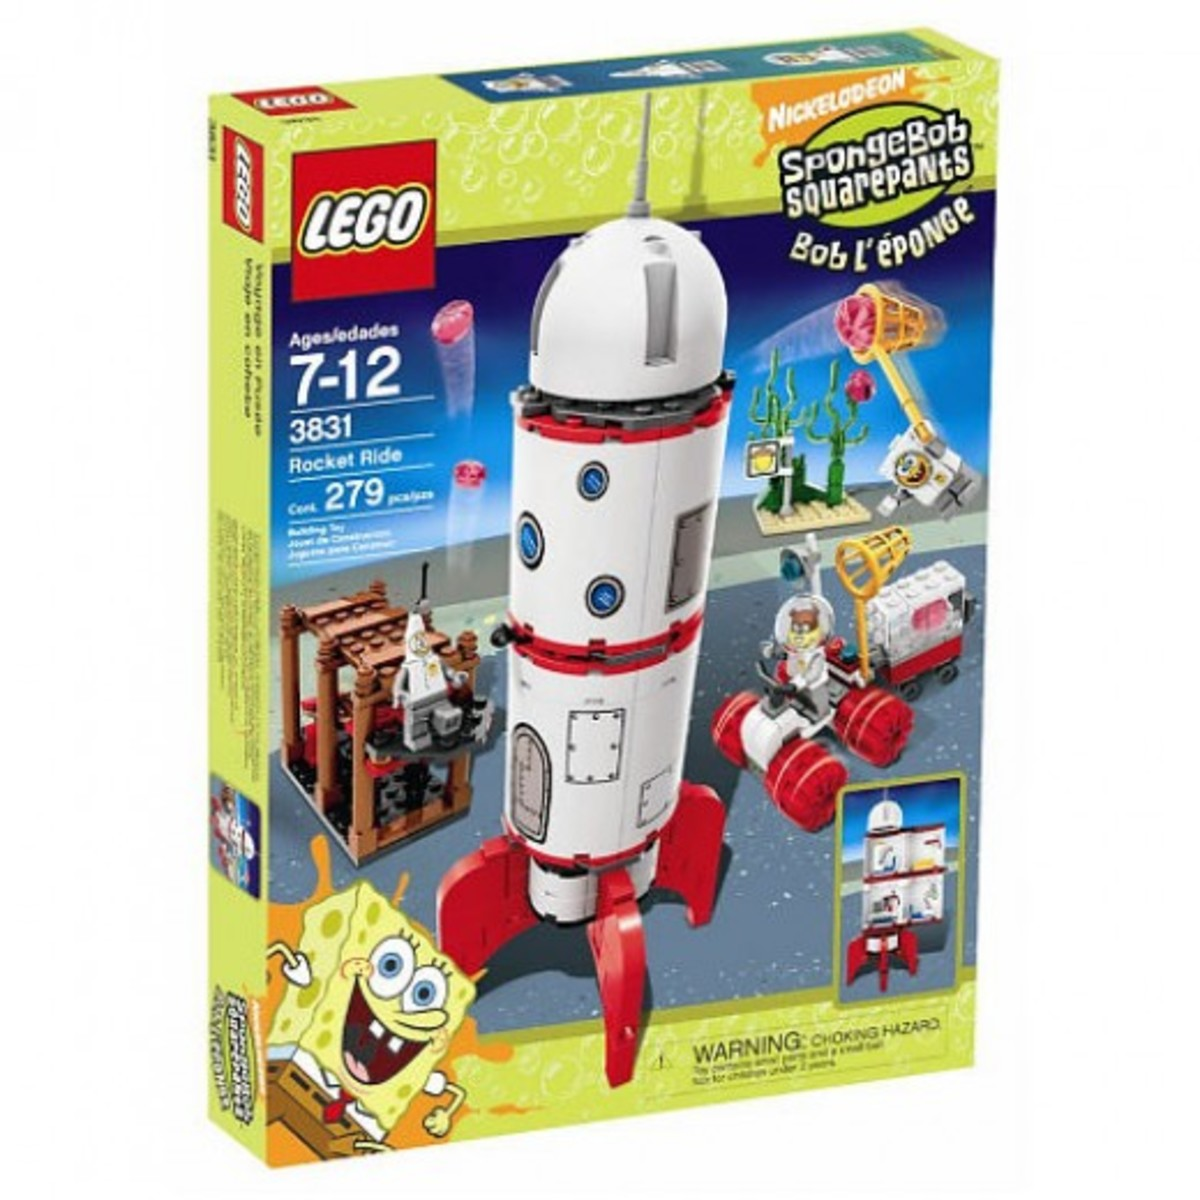 LEGO SpongeBob SquarePants Rocket Ride 3831 Box